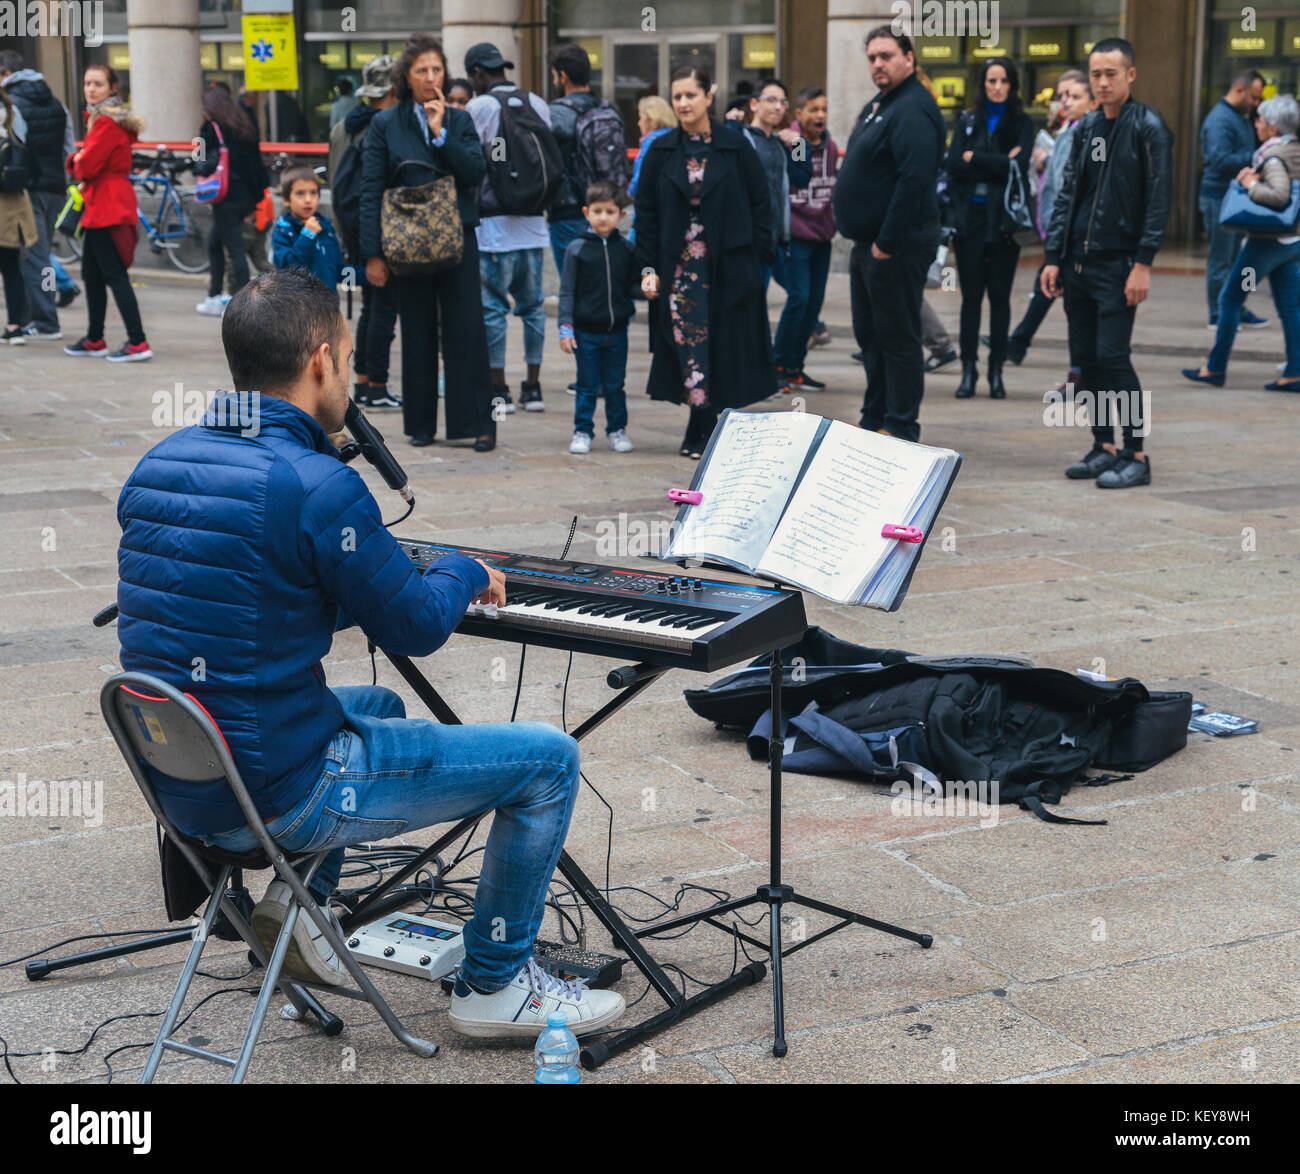 A street performer plays an electronic piano and sings near Piazza Duomo in Milan, Italy - Stock Image